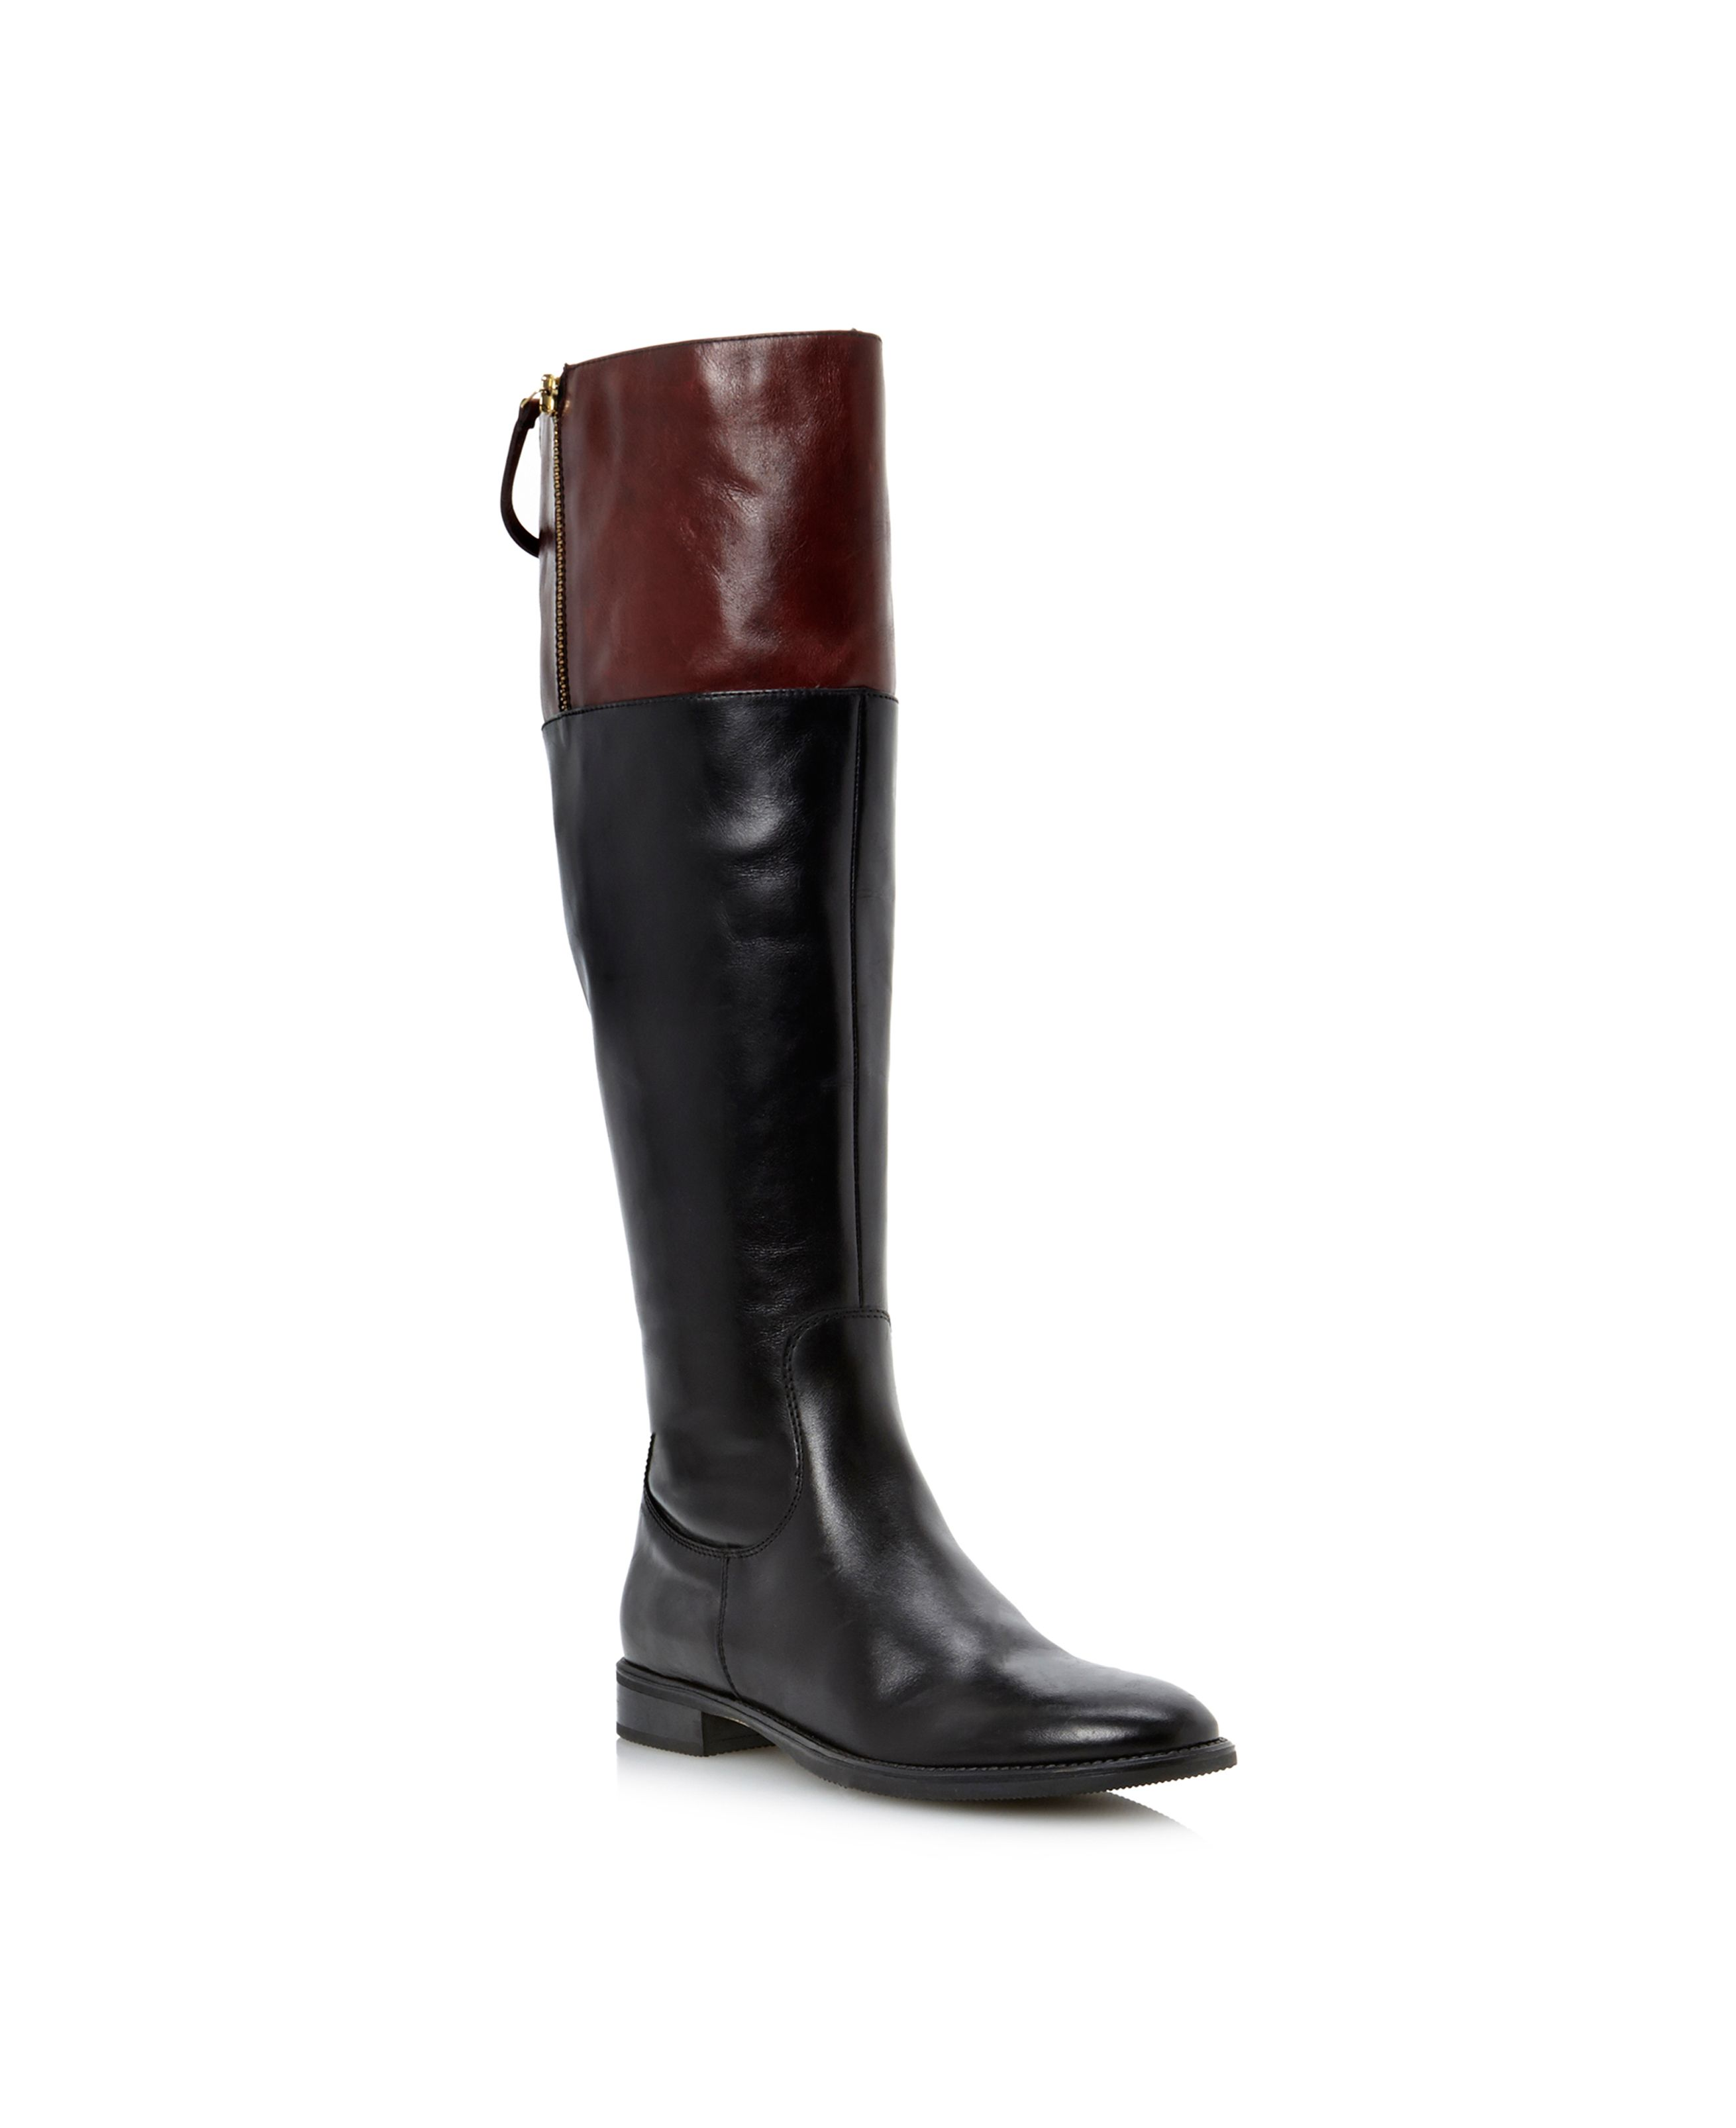 Tinteds contrast leather high boots